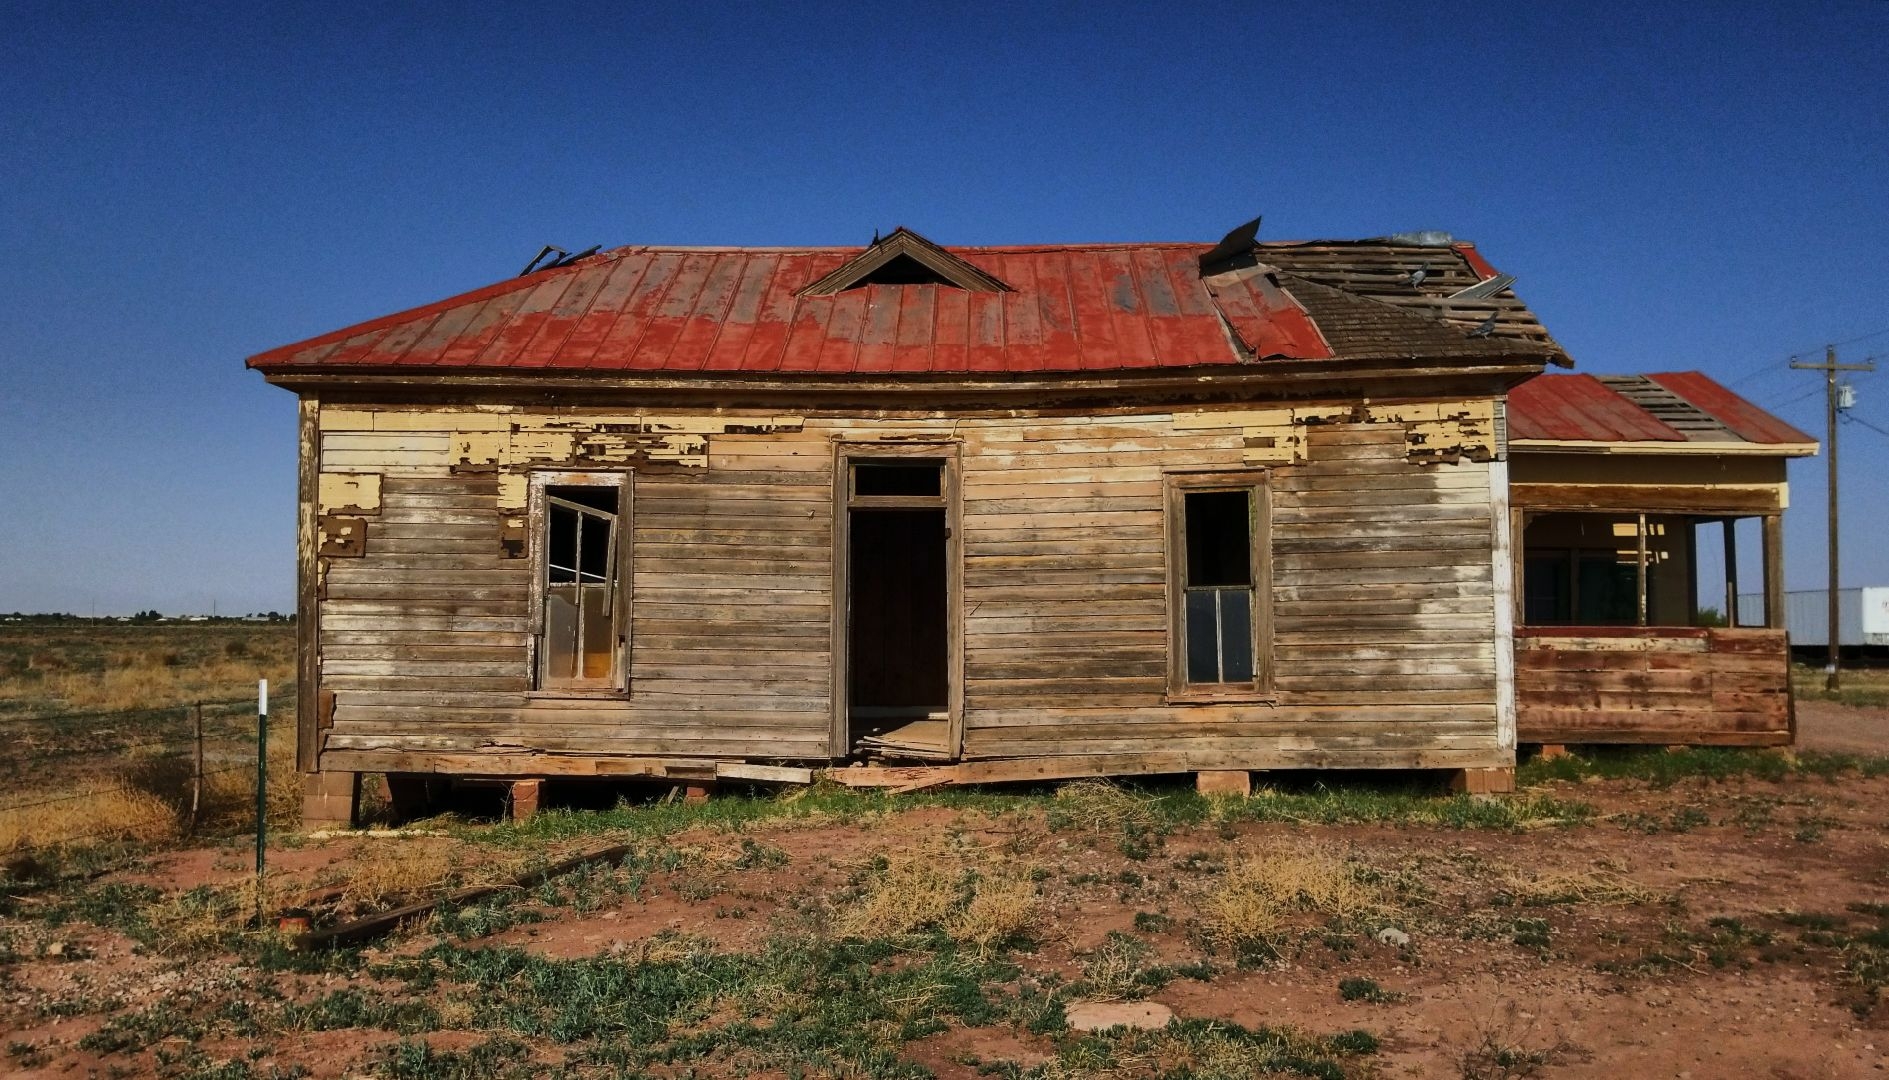 Over 100 year old House moved to this property for a Bride with the addition on the side of the town's old Saloon.